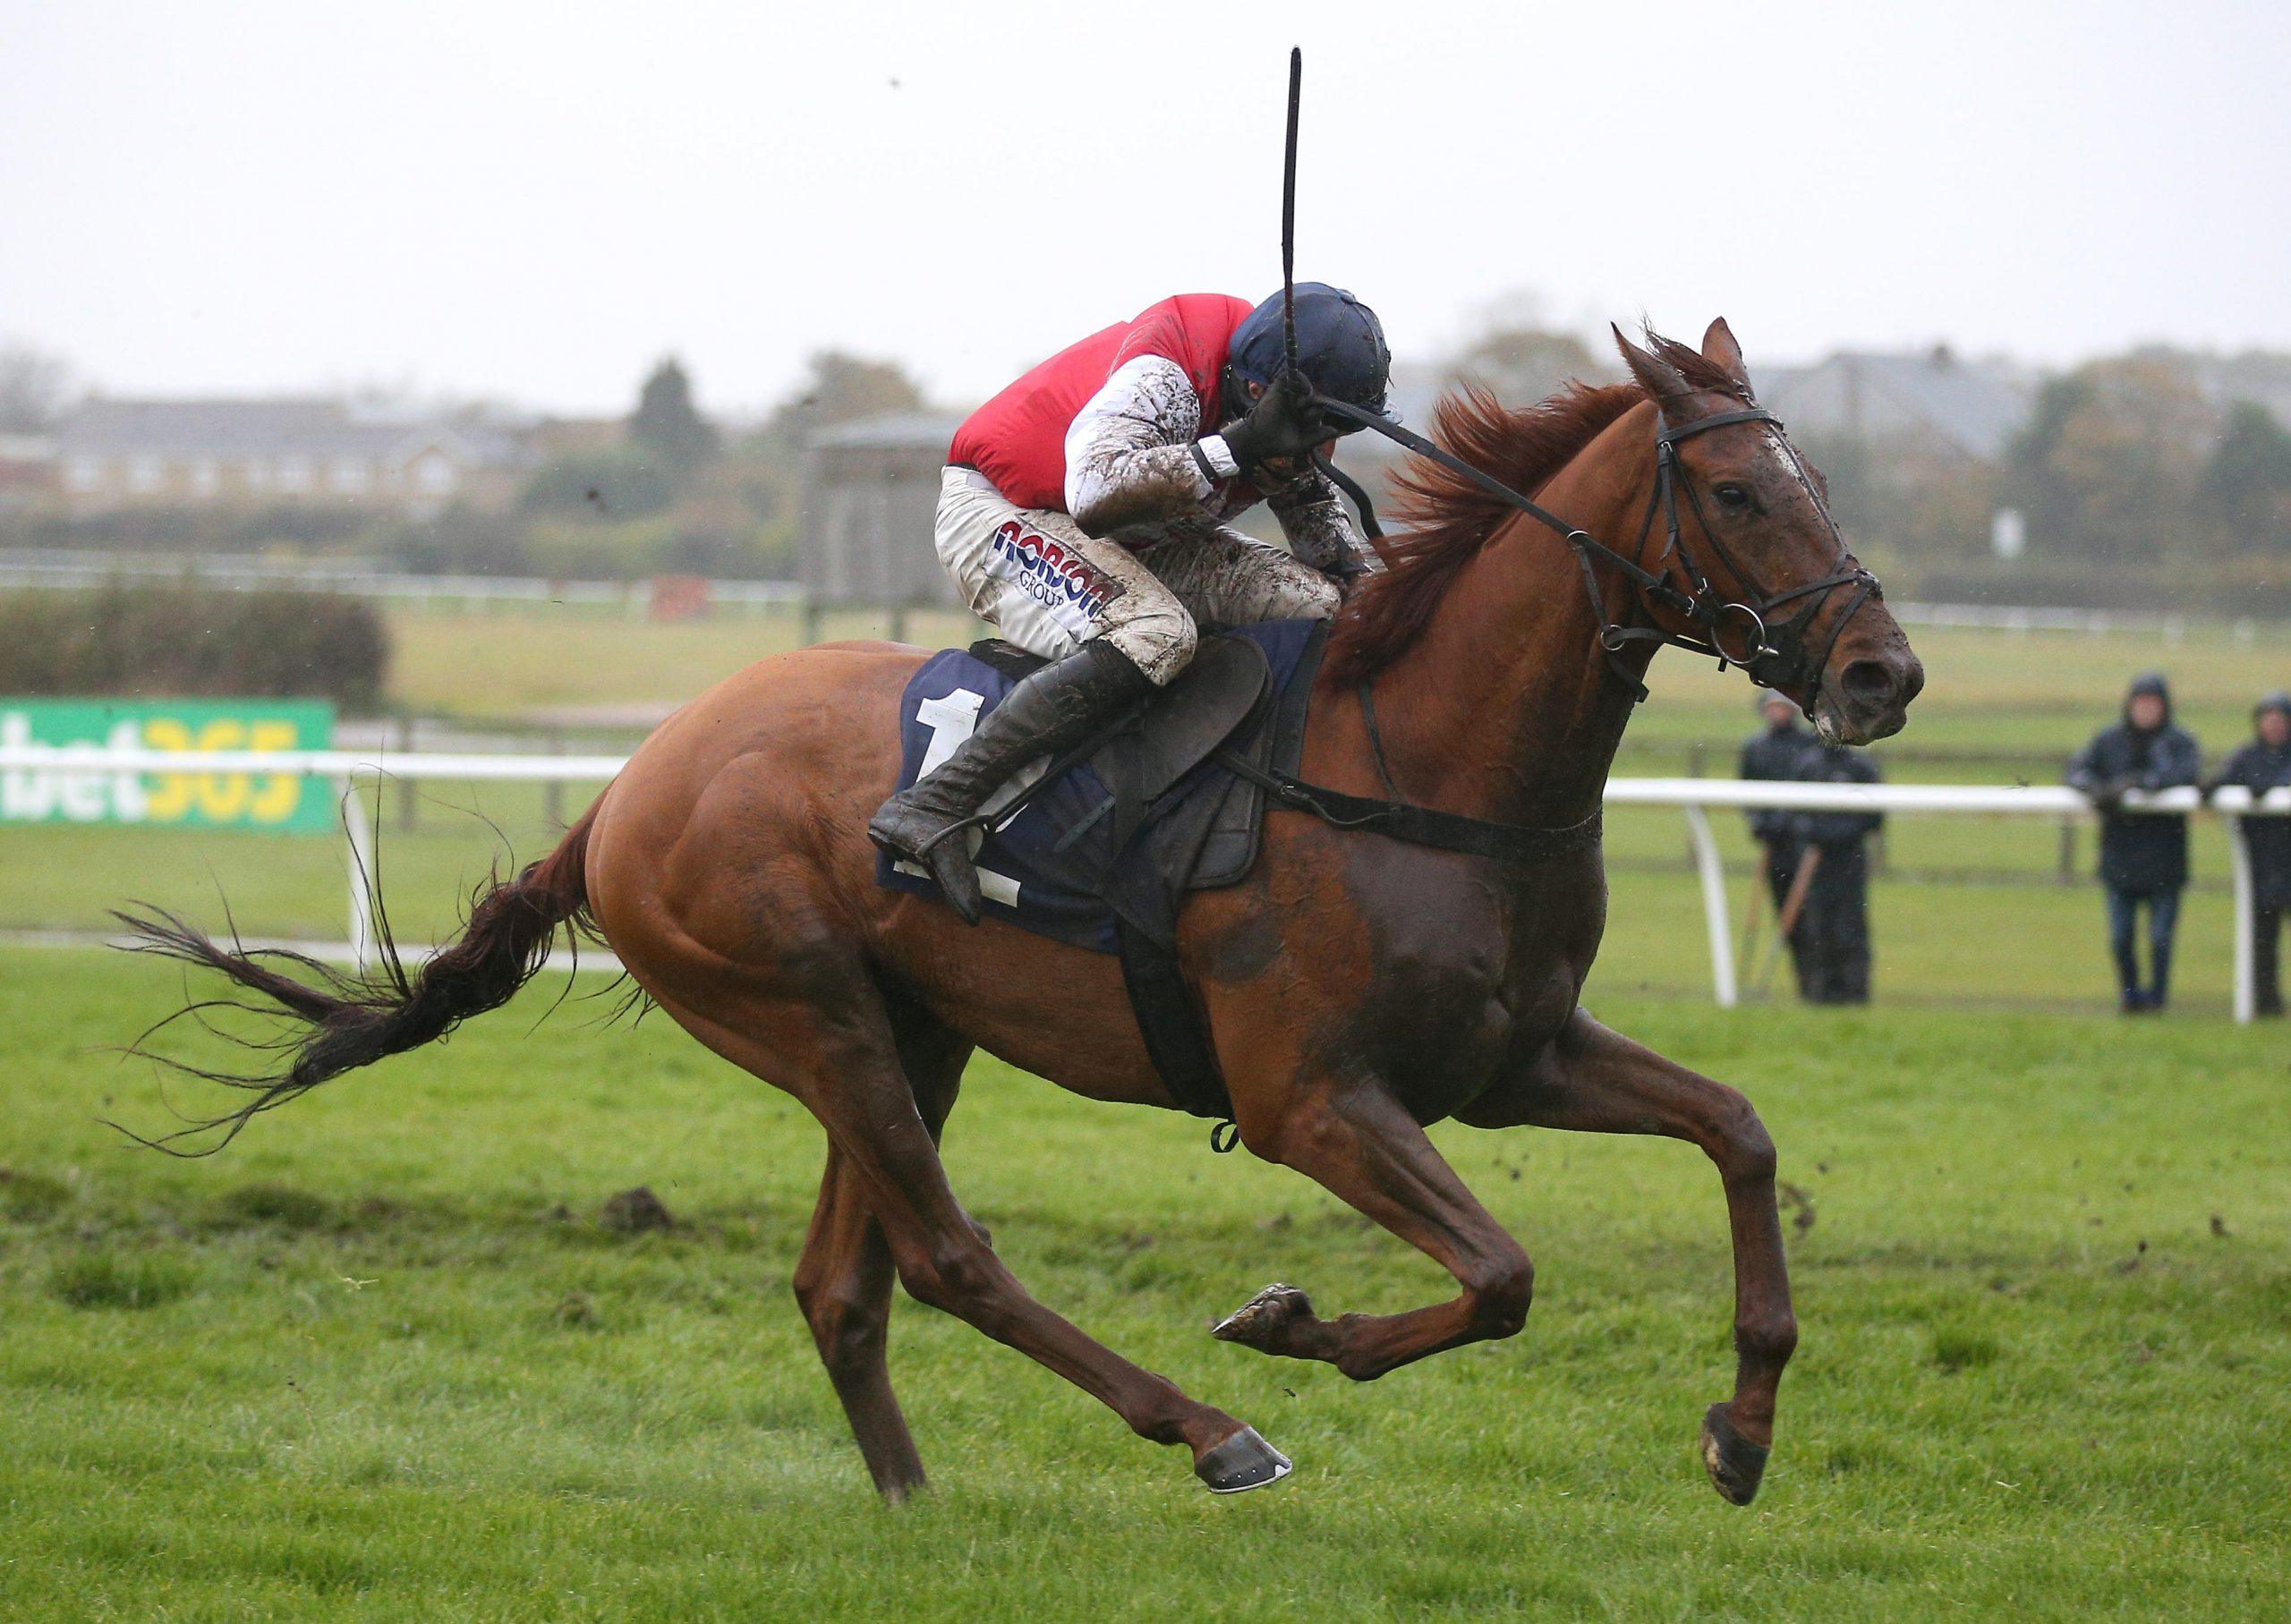 Proschema ridden by Harry Skelton wins The bet365 Novices Hurdle Race during day two of the Bet365 meeting at Wetherby Racecourse.